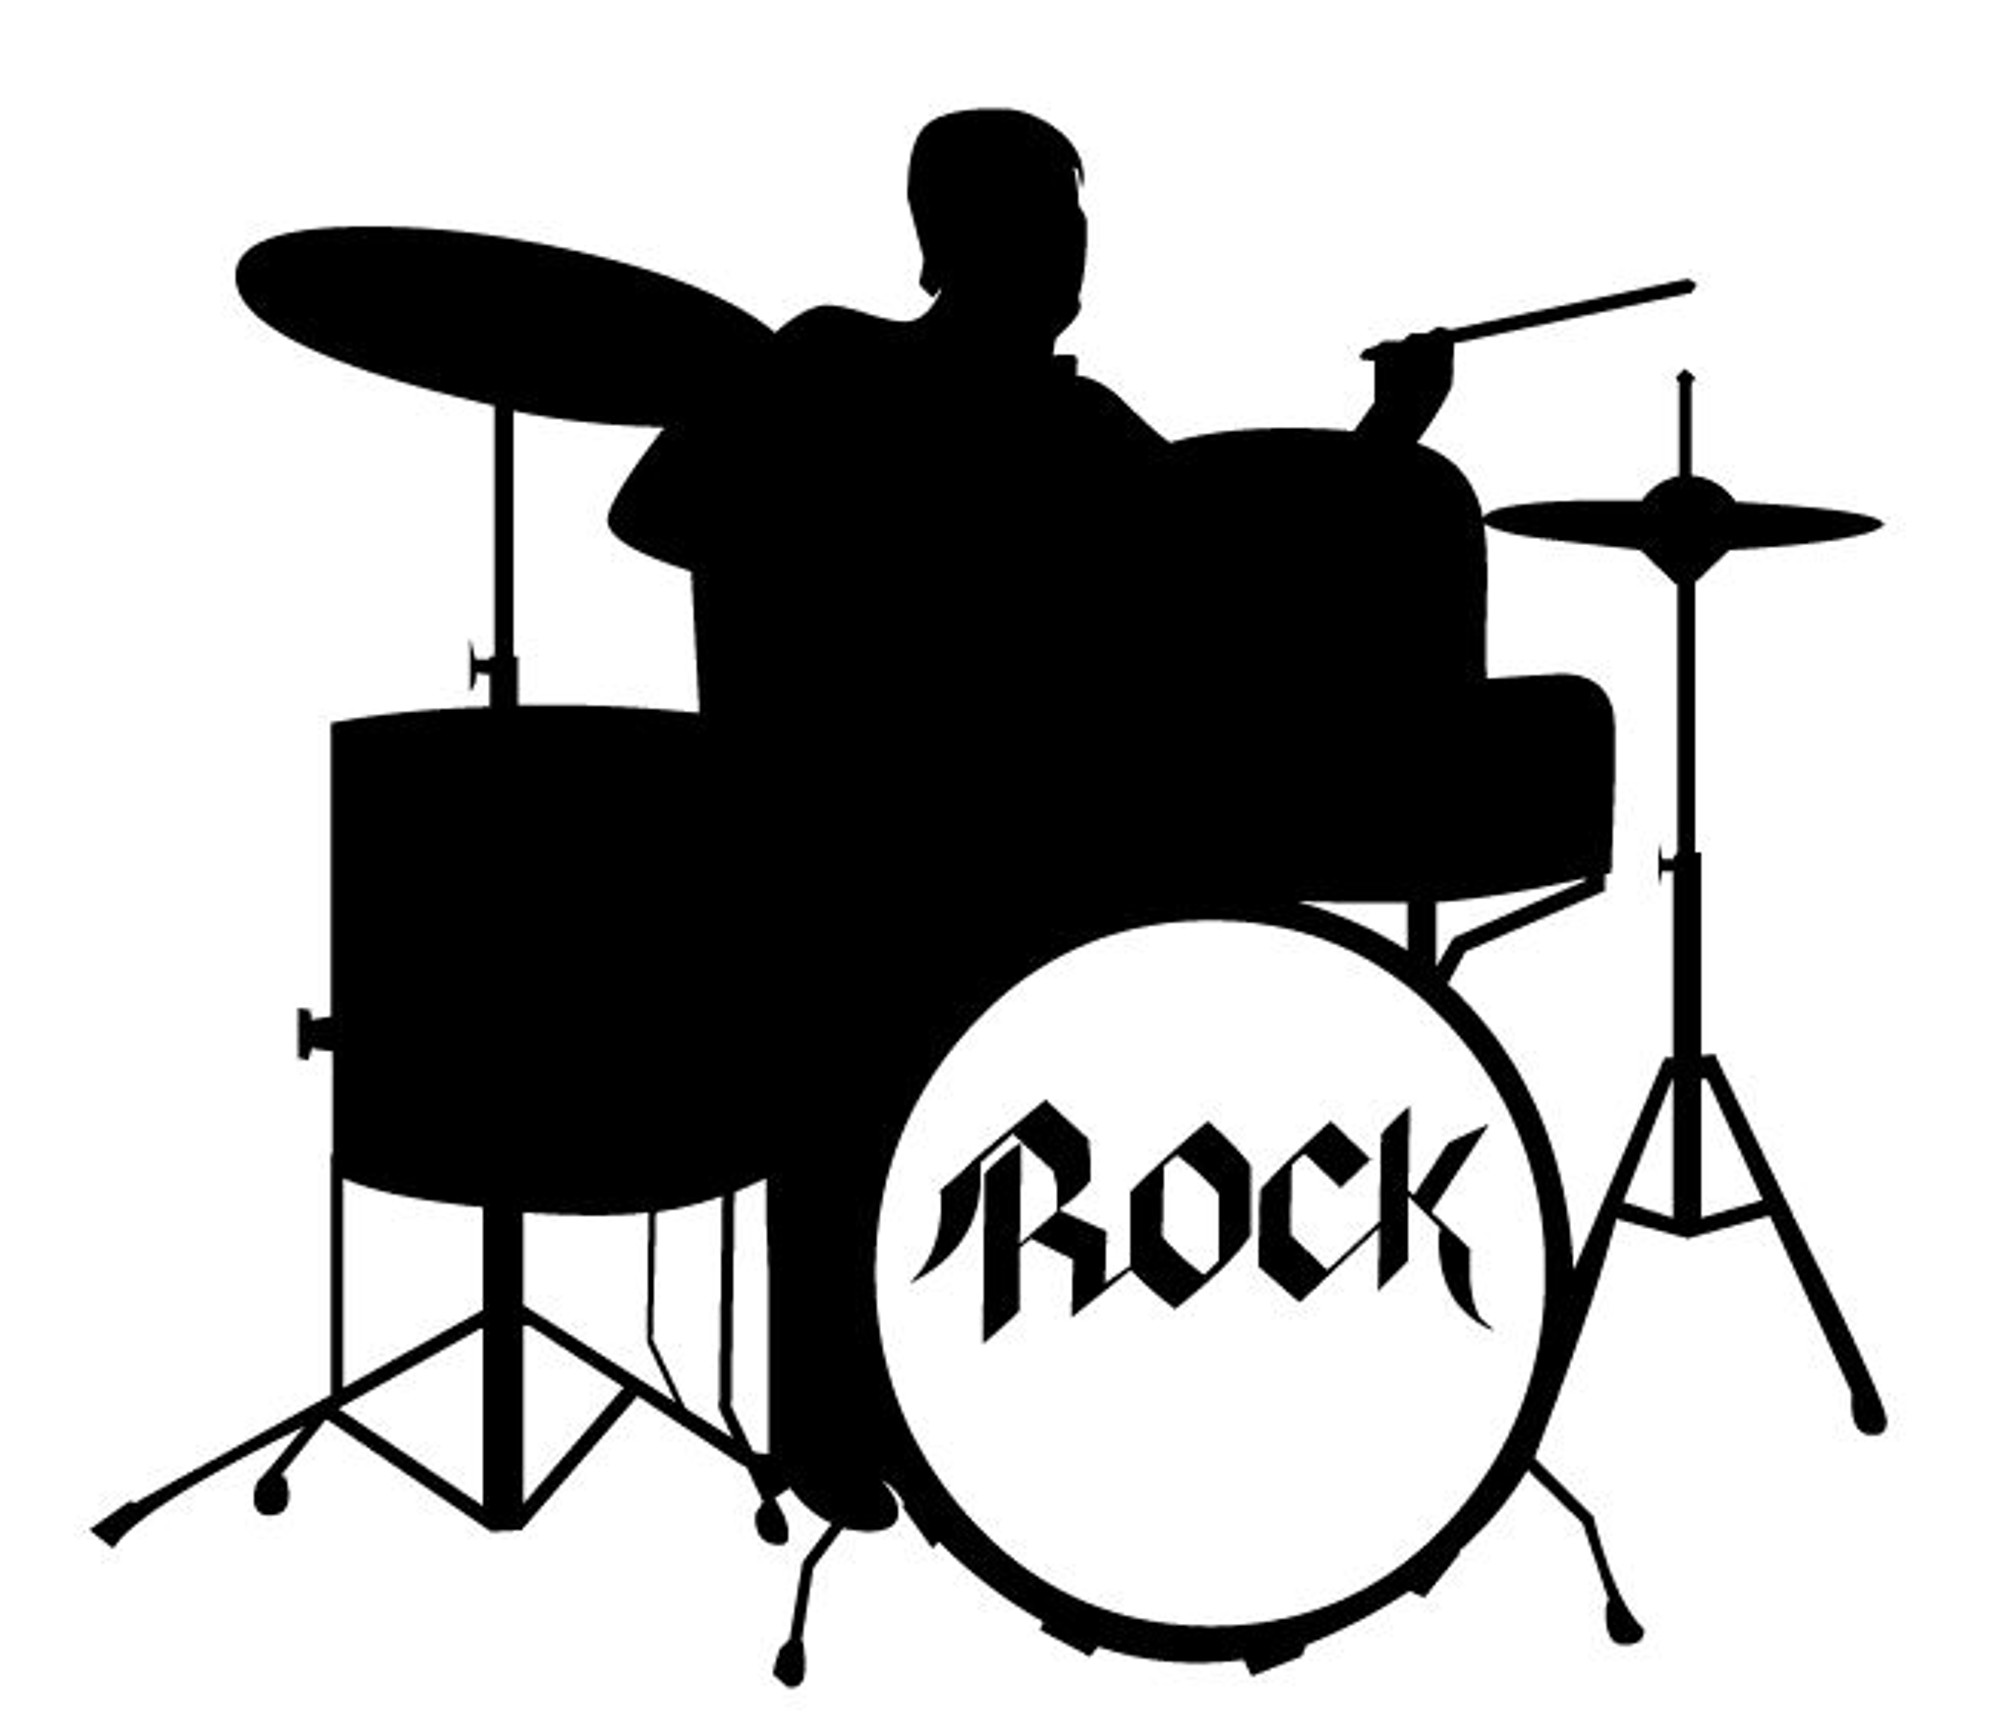 music car decals car stickers rock drummer car decal. Black Bedroom Furniture Sets. Home Design Ideas